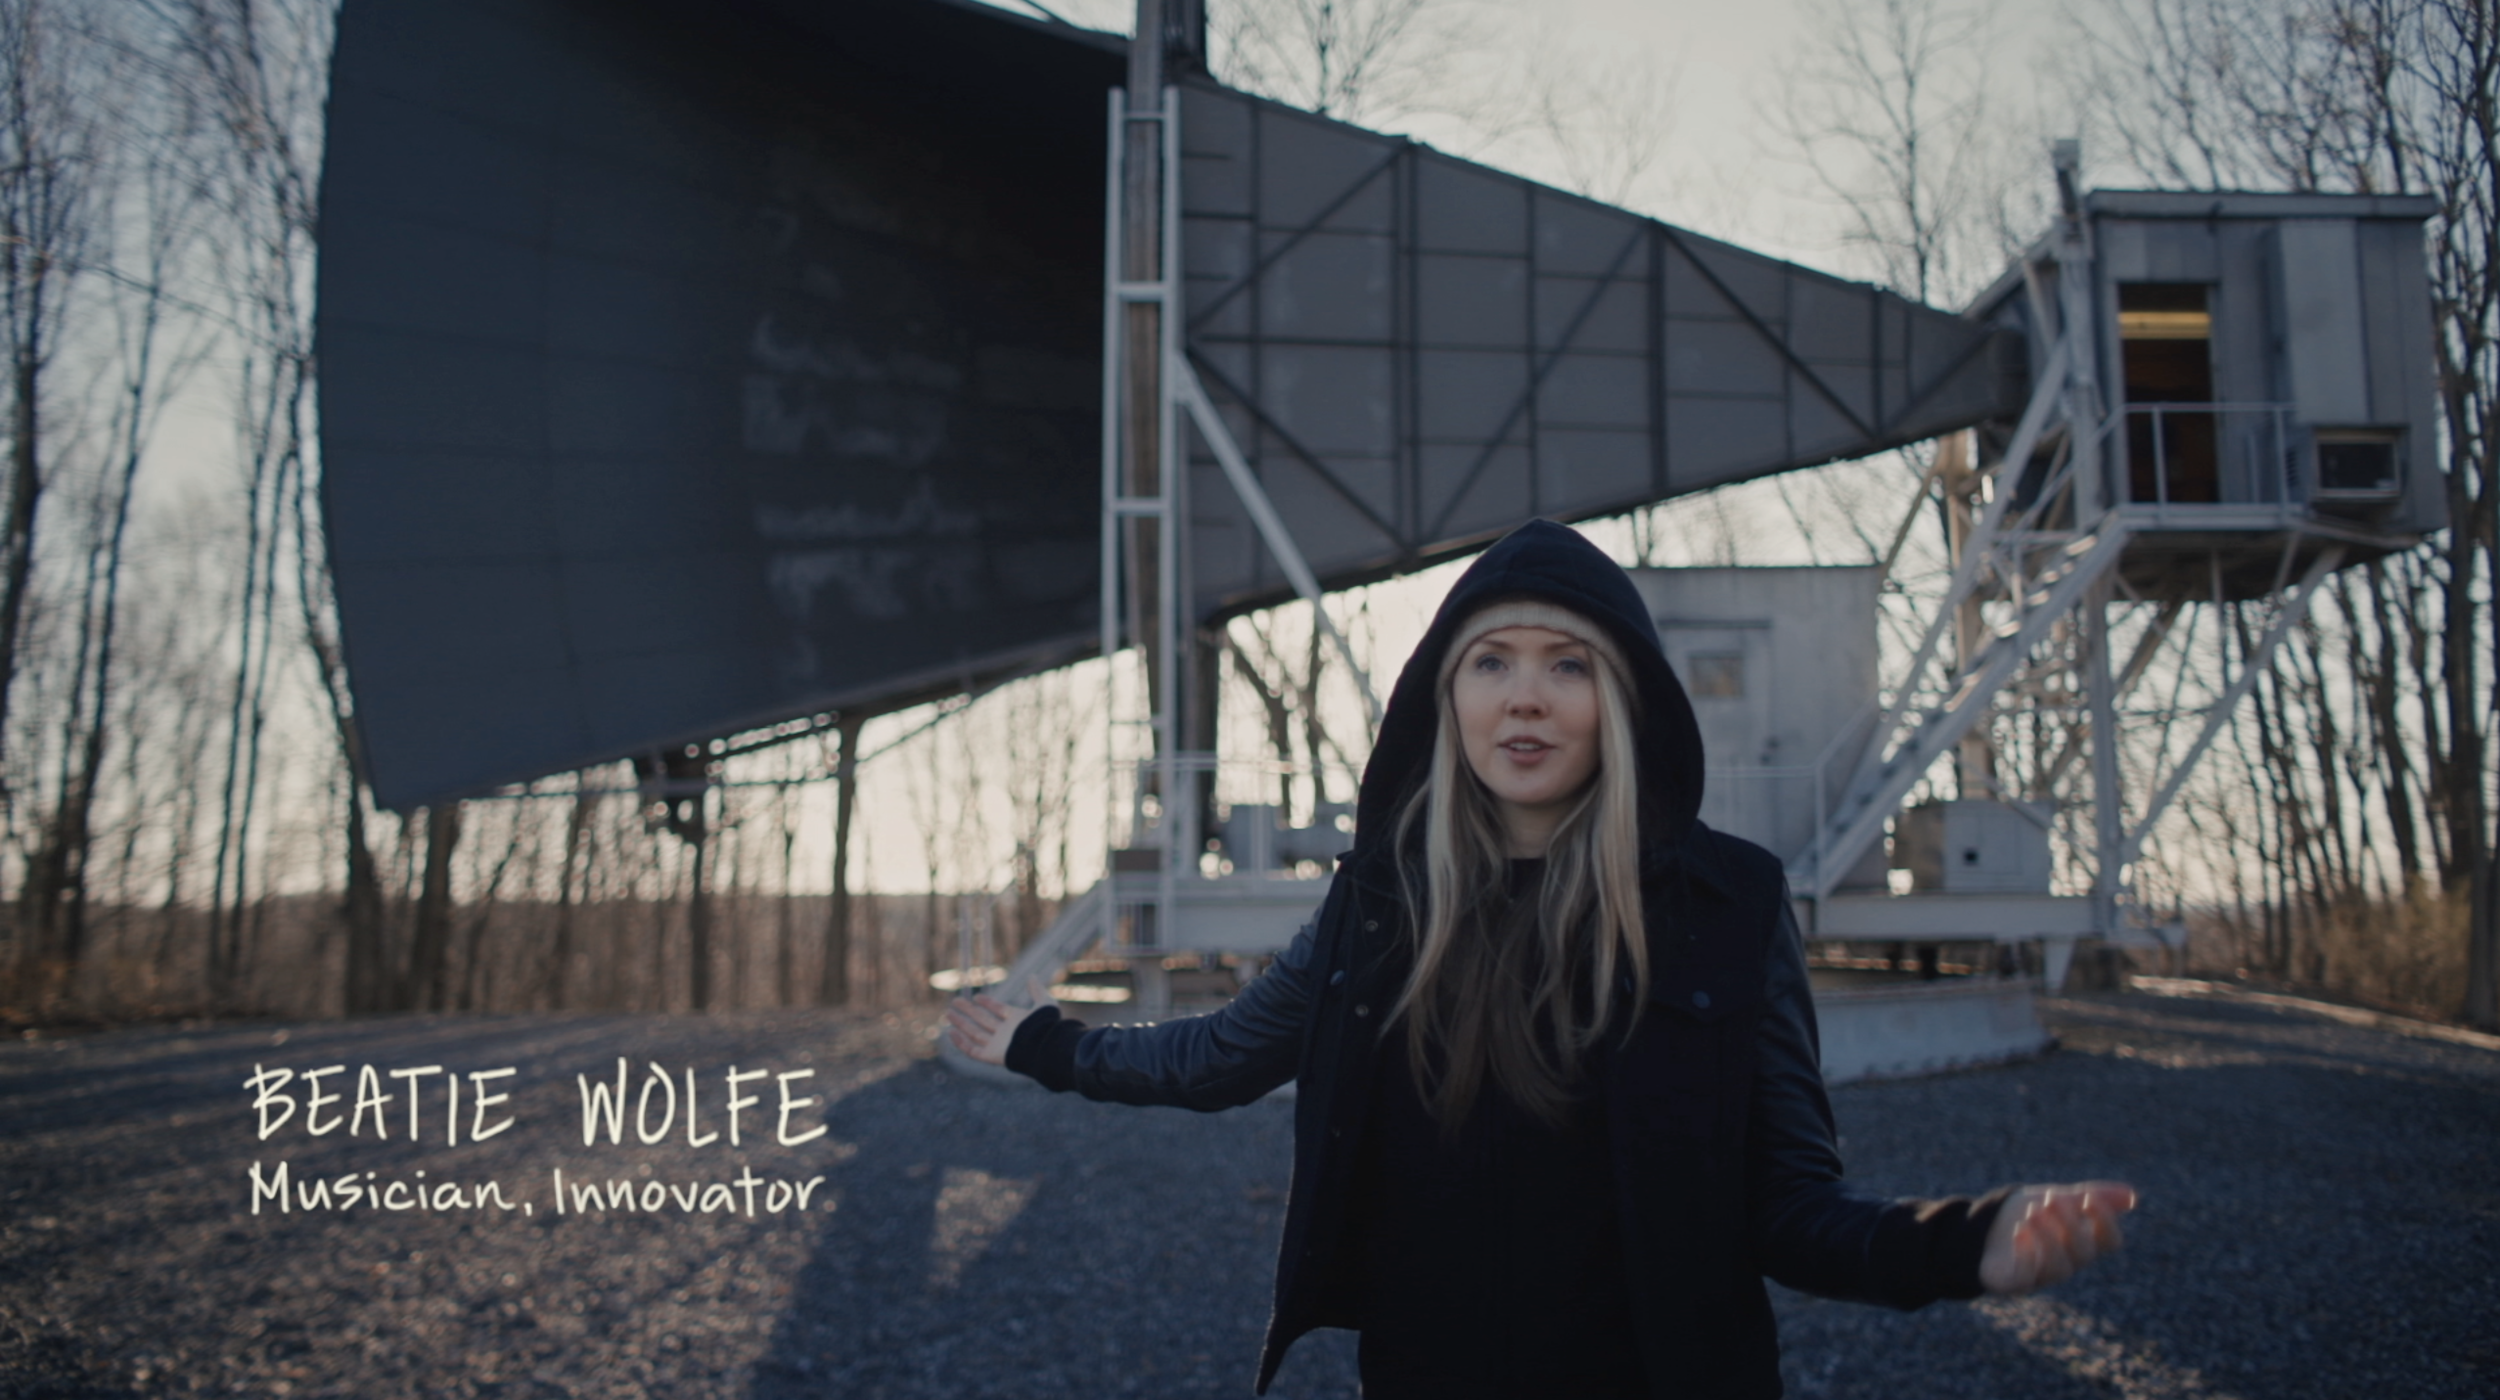 Beatie Wolfe - 2018 Raw Space Beam - Nokia Bell Labs Holmdel Horn Antenna